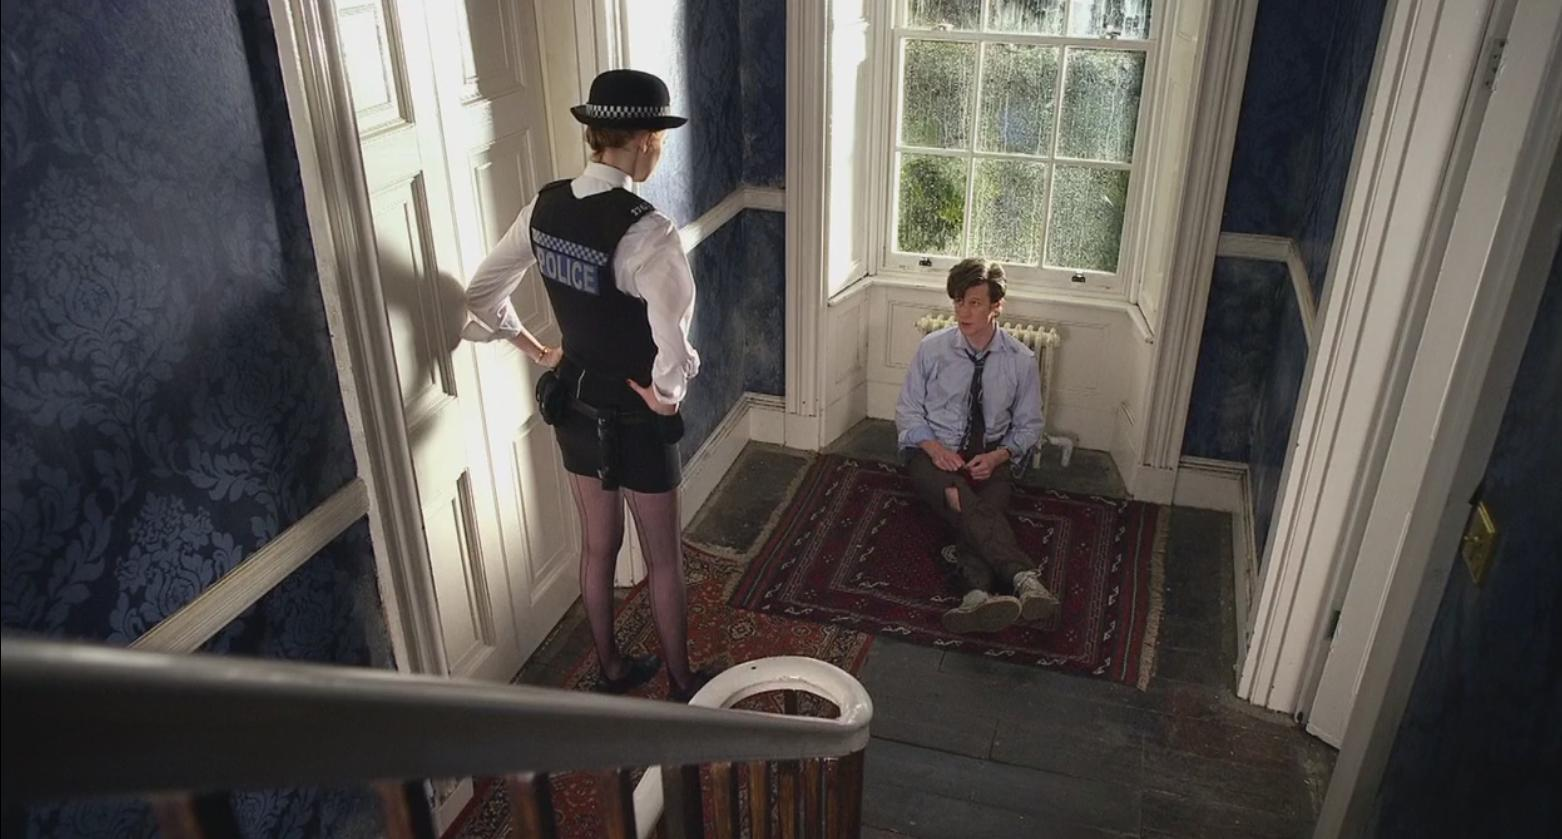 The Doctor Handcuffed Radiator Older Amy Pond Real